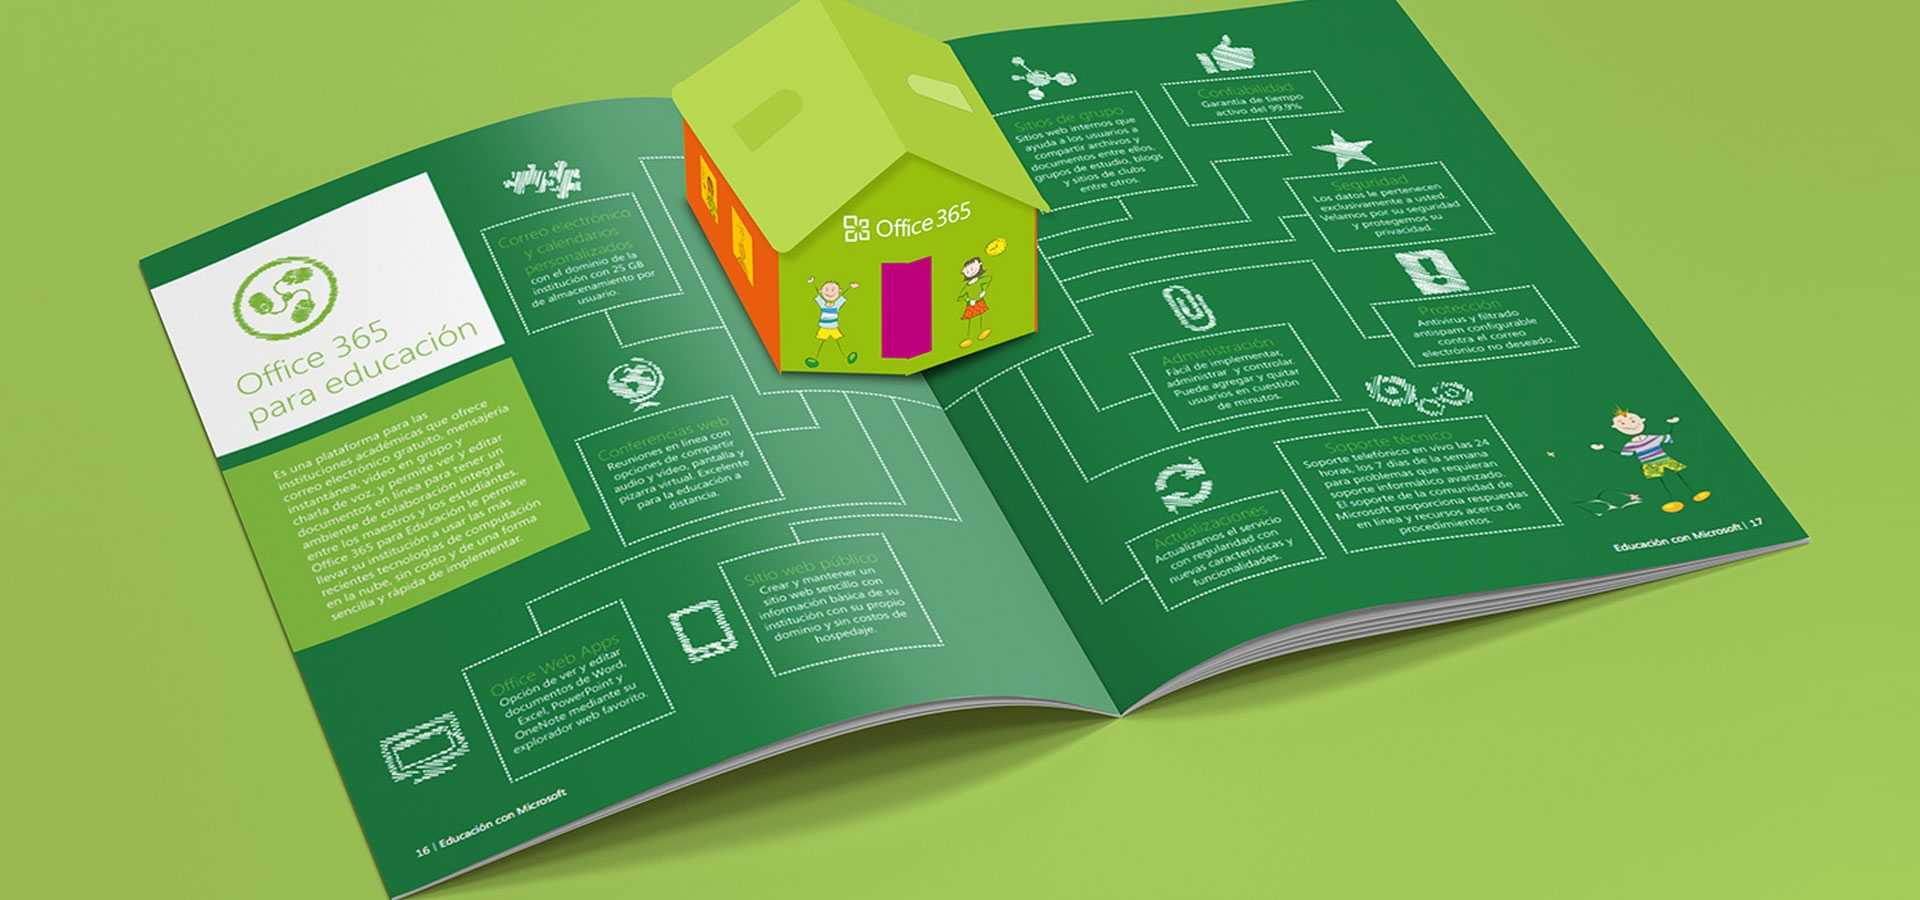 19+ 3D Pop Up Brochure Designs | Free & Premium Templates For Pop Up Brochure Template